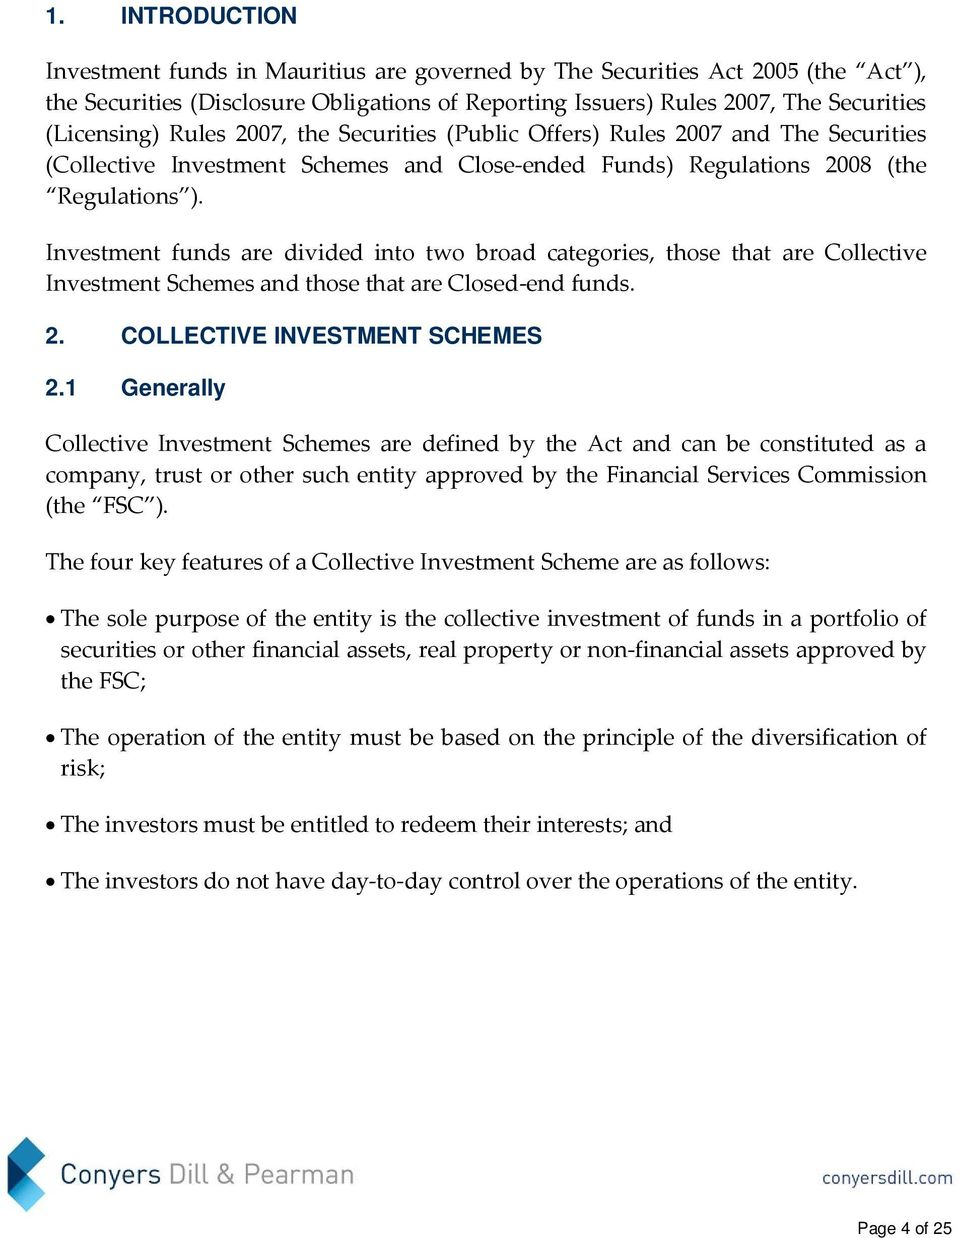 Investment funds are divided into two broad categories, those that are Collective Investment Schemes and those that are Closed end funds. 2. COLLECTIVE INVESTMENT SCHEMES 2.